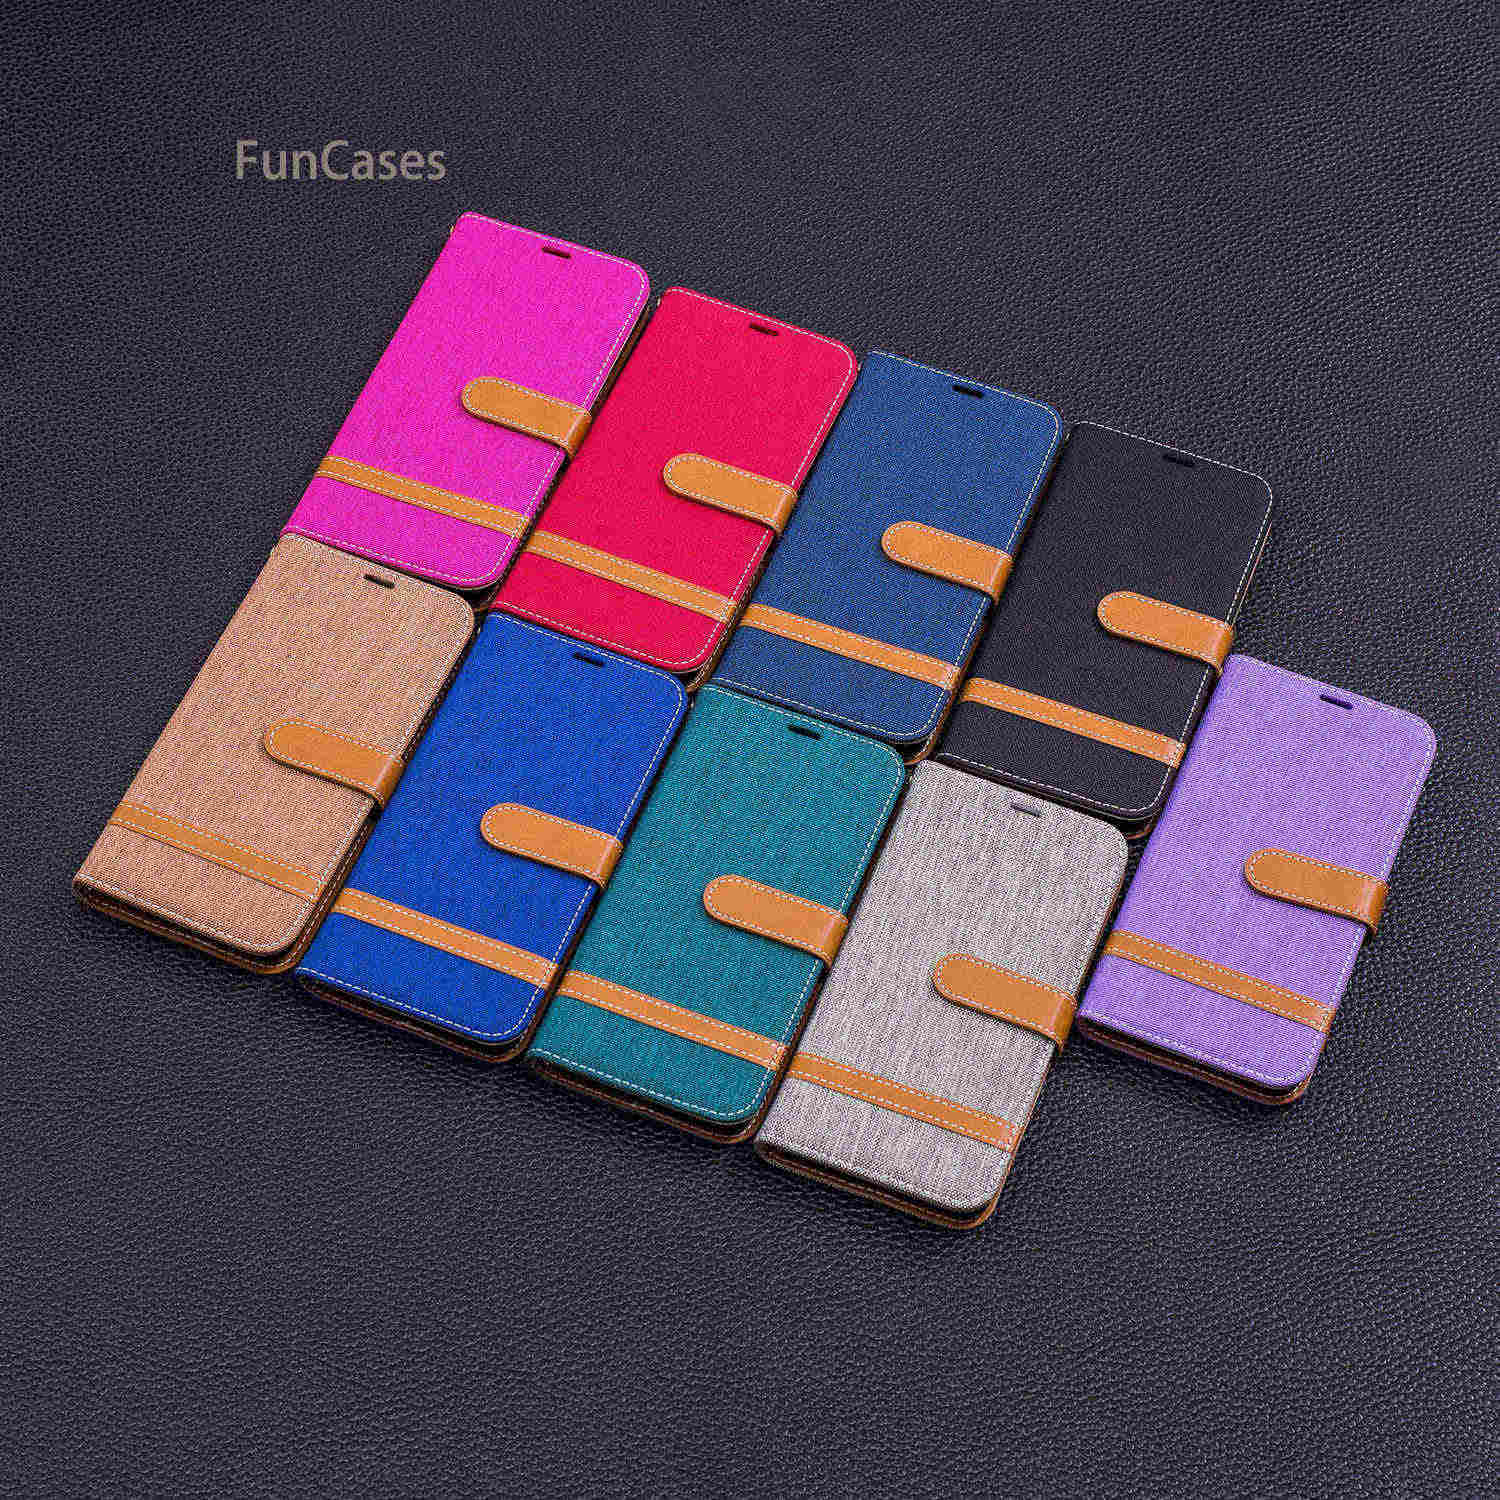 Hit color Flip Phone Case sFor Celular LG G7 Bracket Case Caso Geometric Fitted Case For LG G7 Back Carcasa Obal Na Telefon